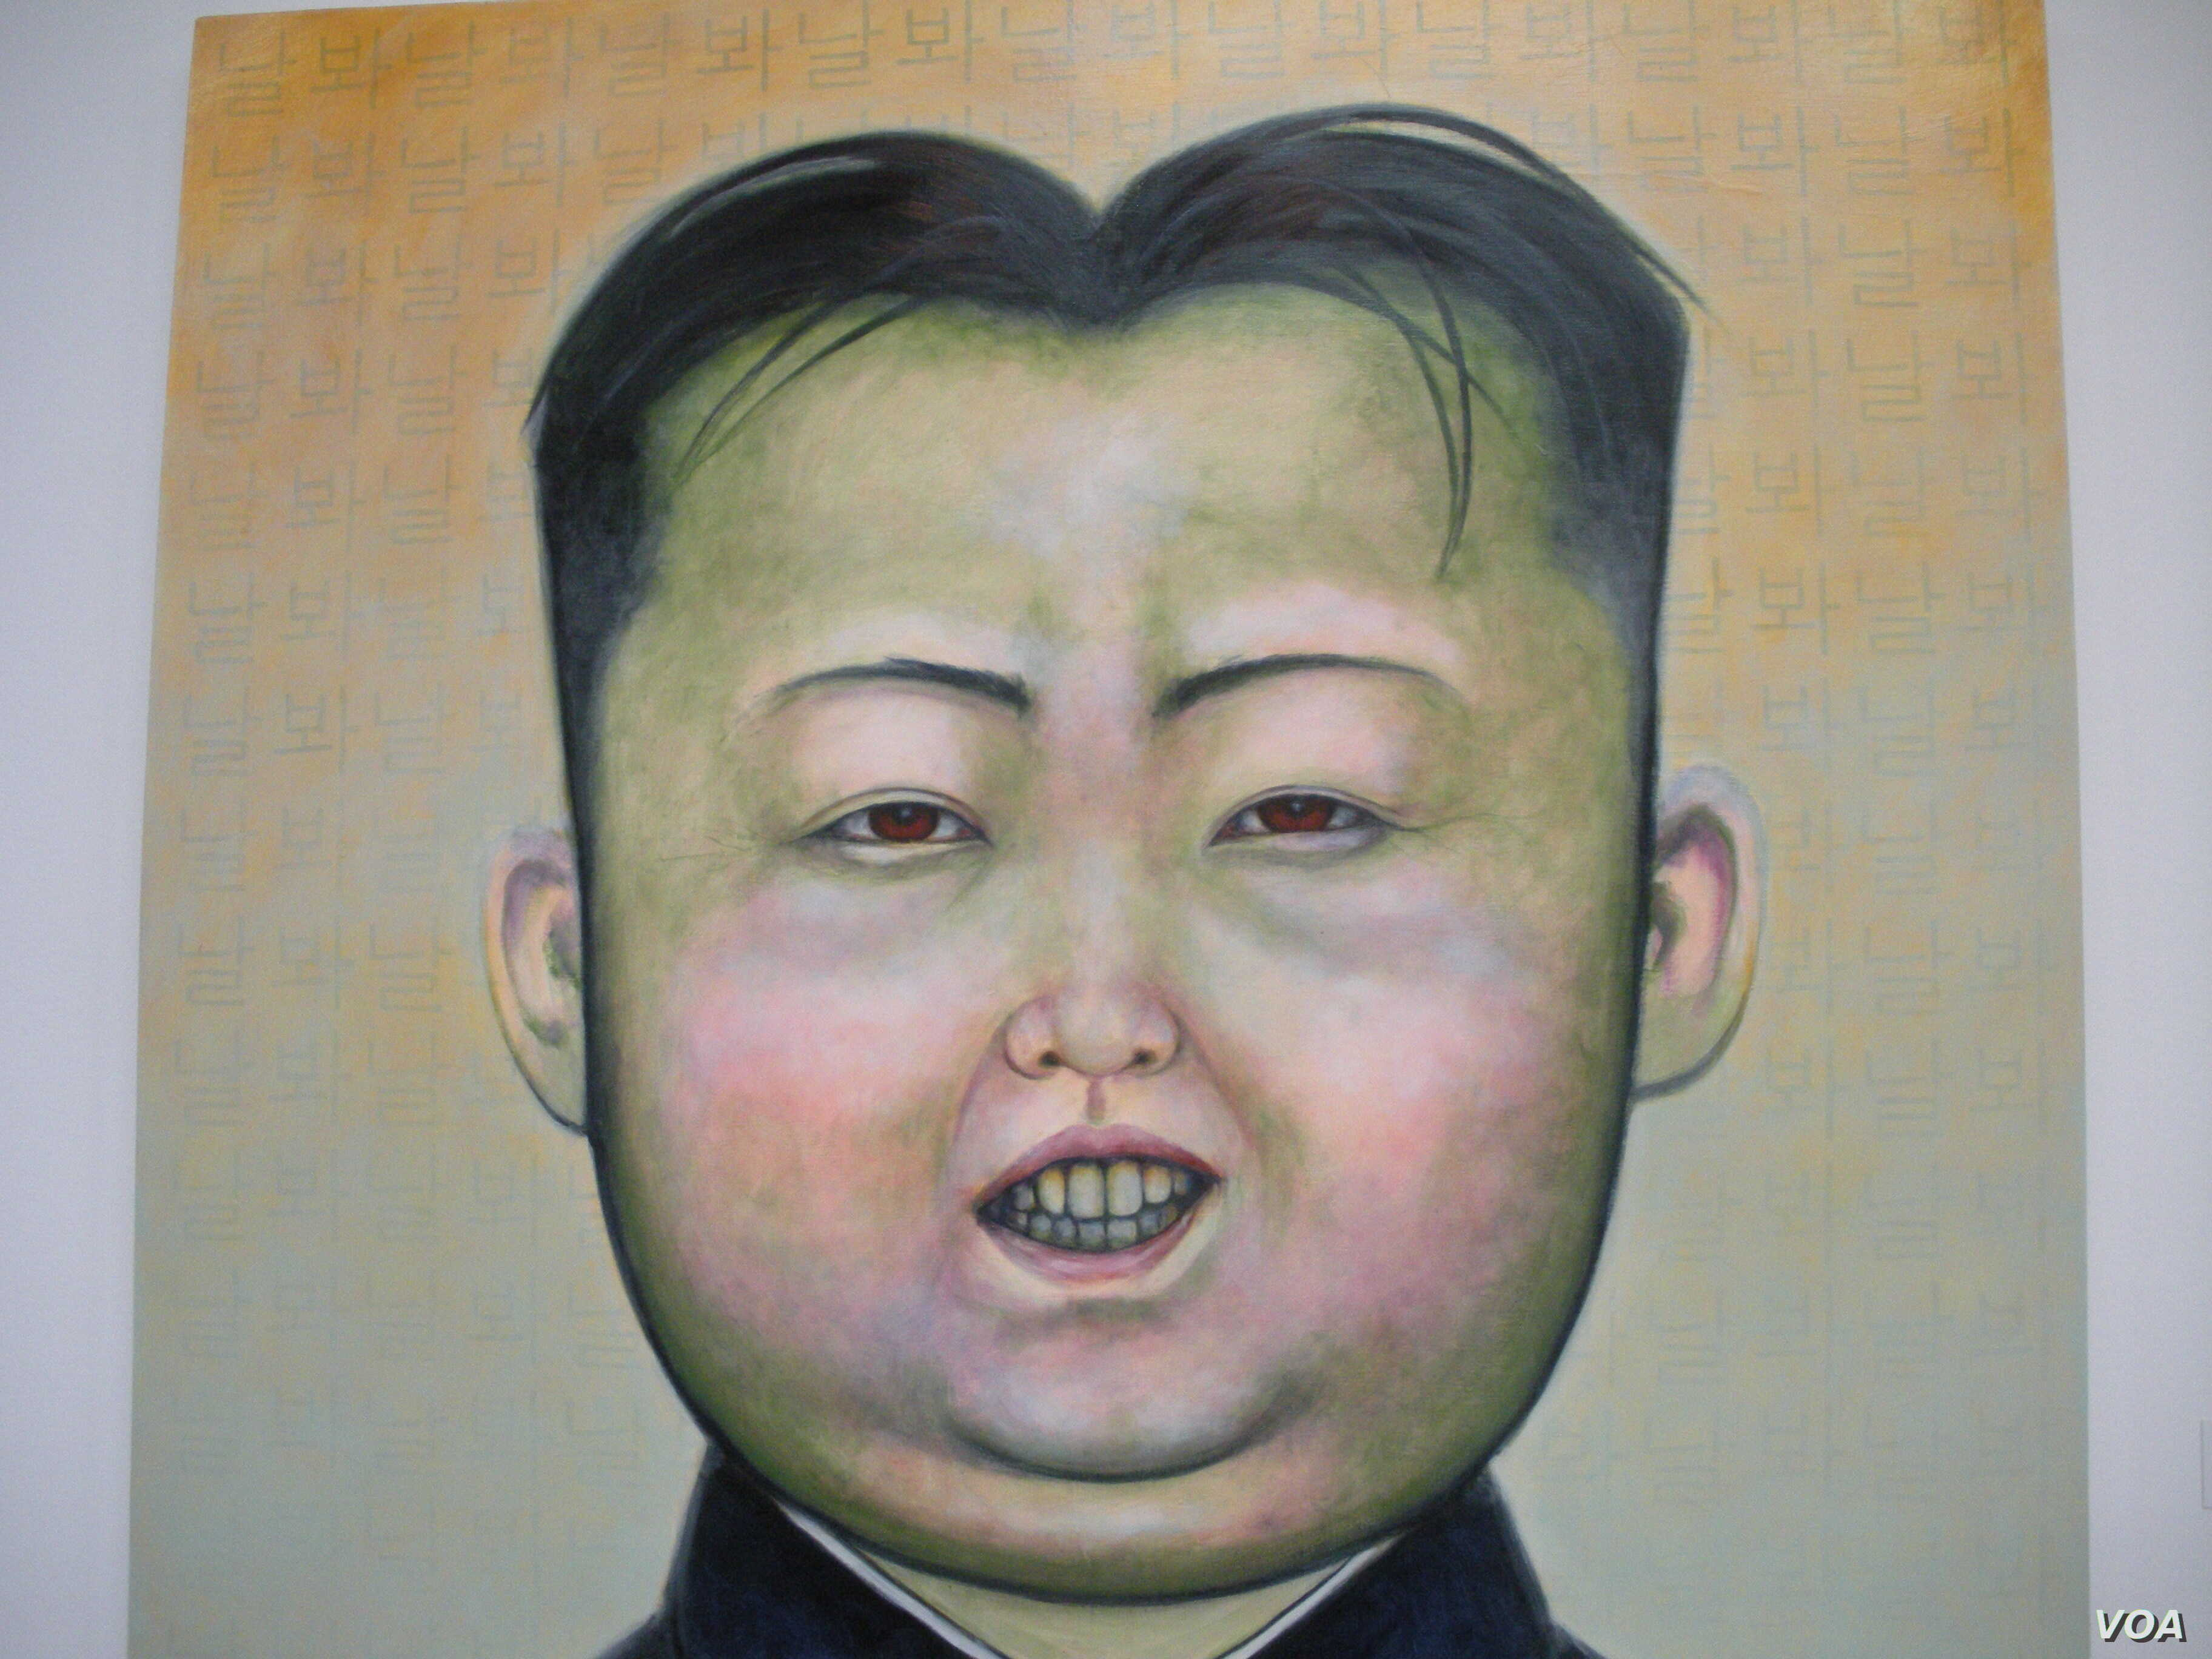 (Kim Jong Un) Narbah (Look at Me) 2013 Oil on canvas 79.25 x 68.5 in. (Photo: VOA/J. Taboh)